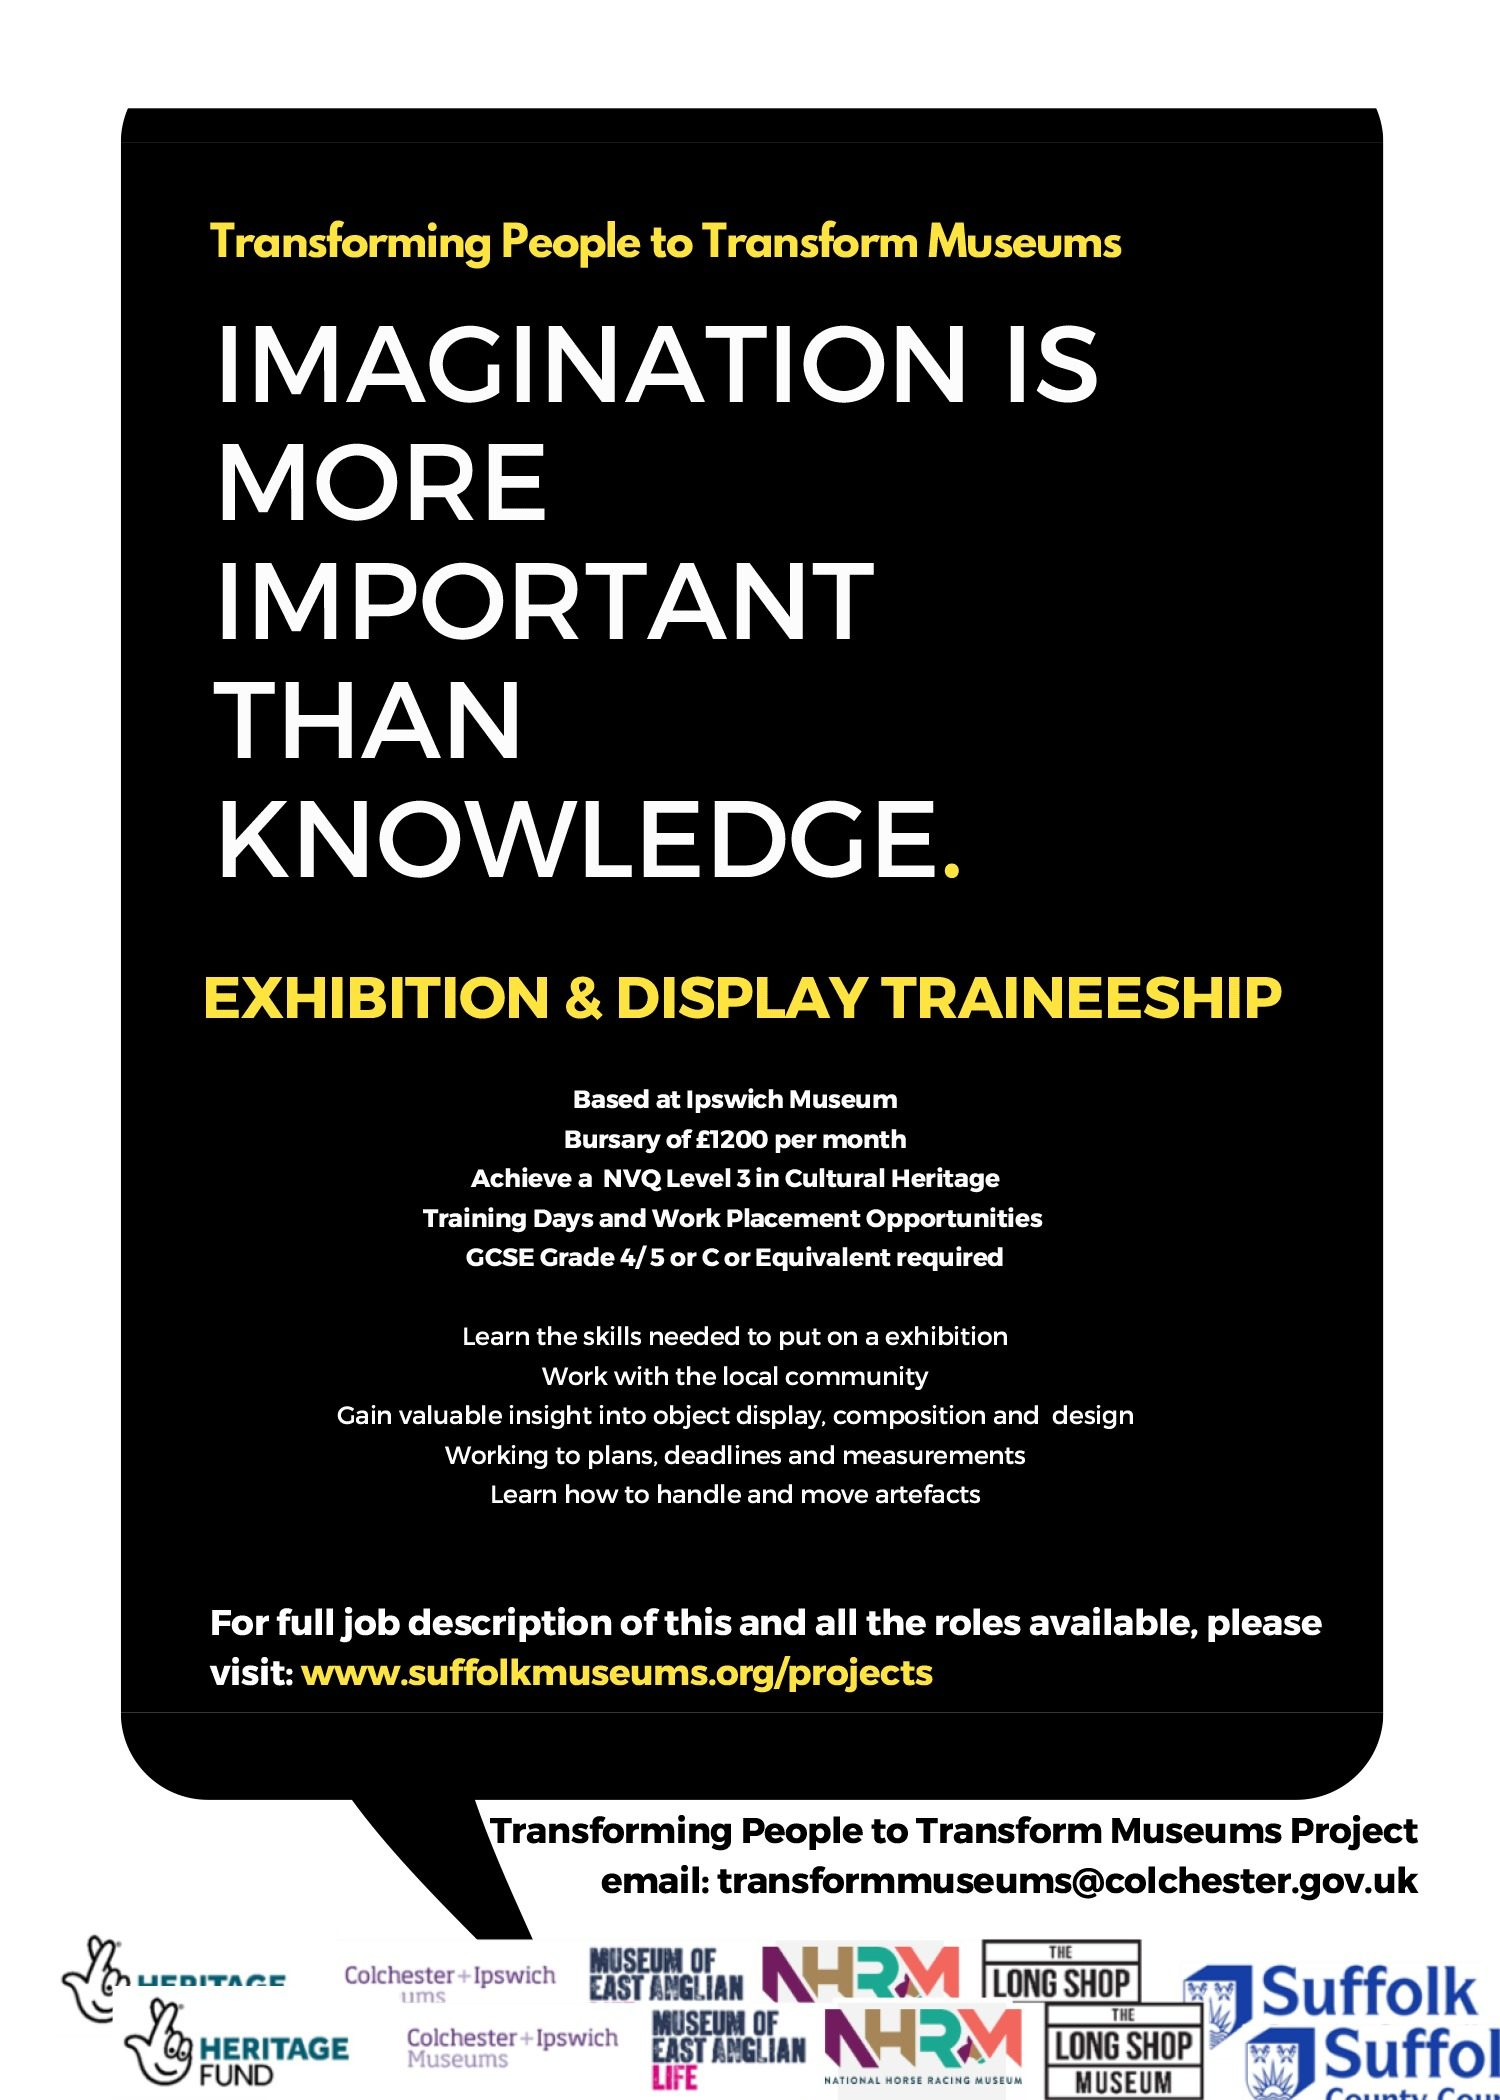 Exhibition And Display Traineeship